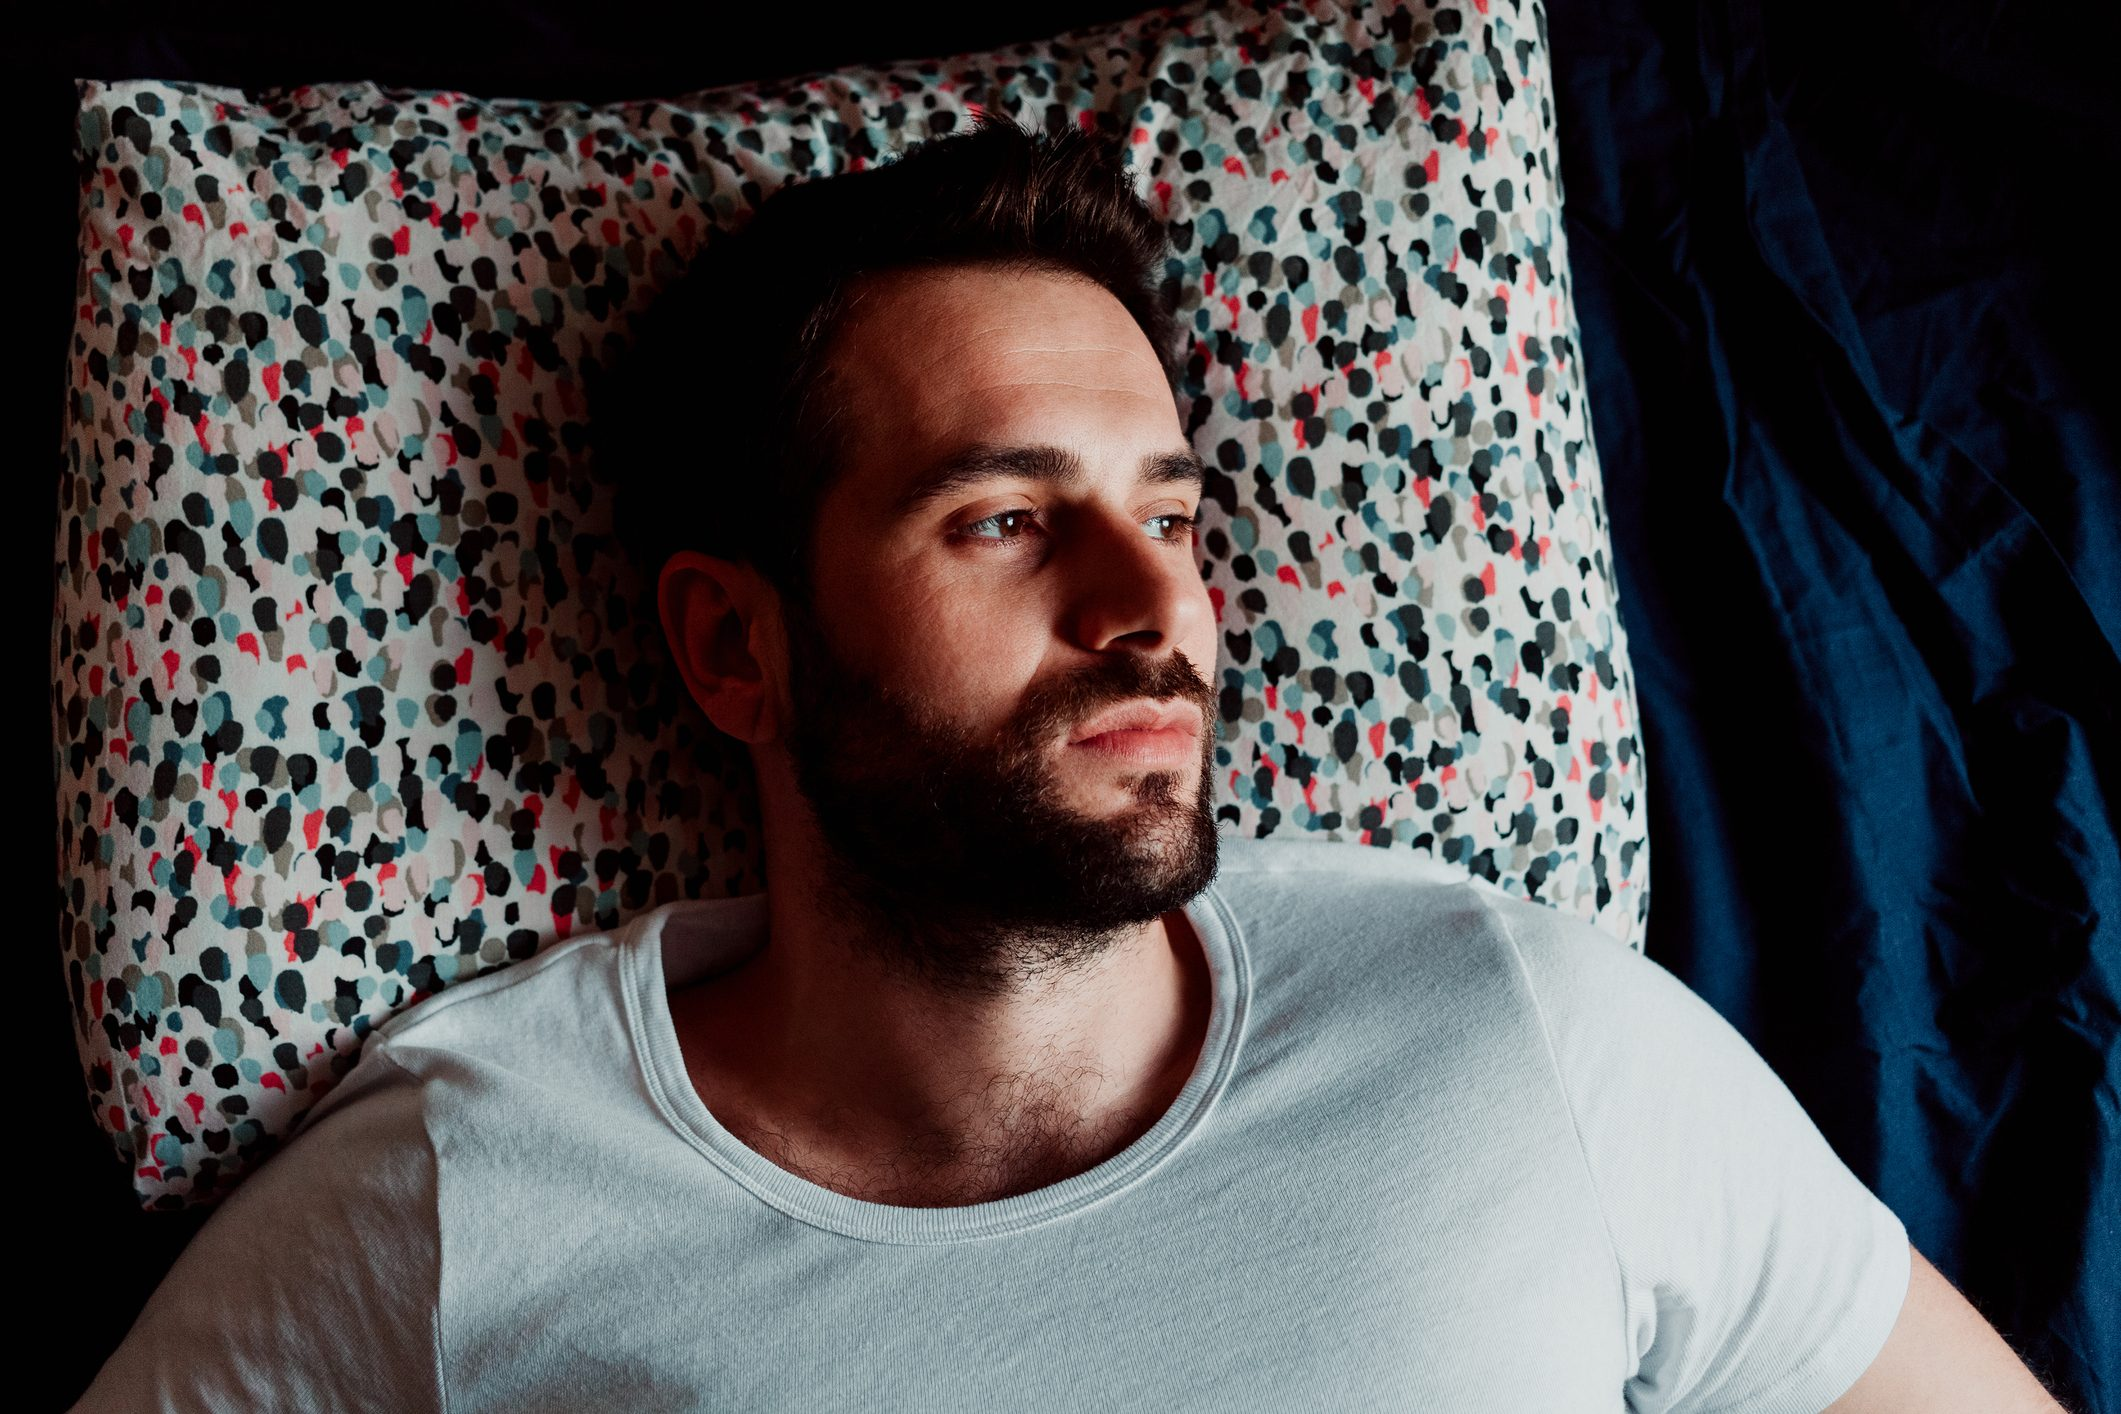 man lying in bed not able to sleep